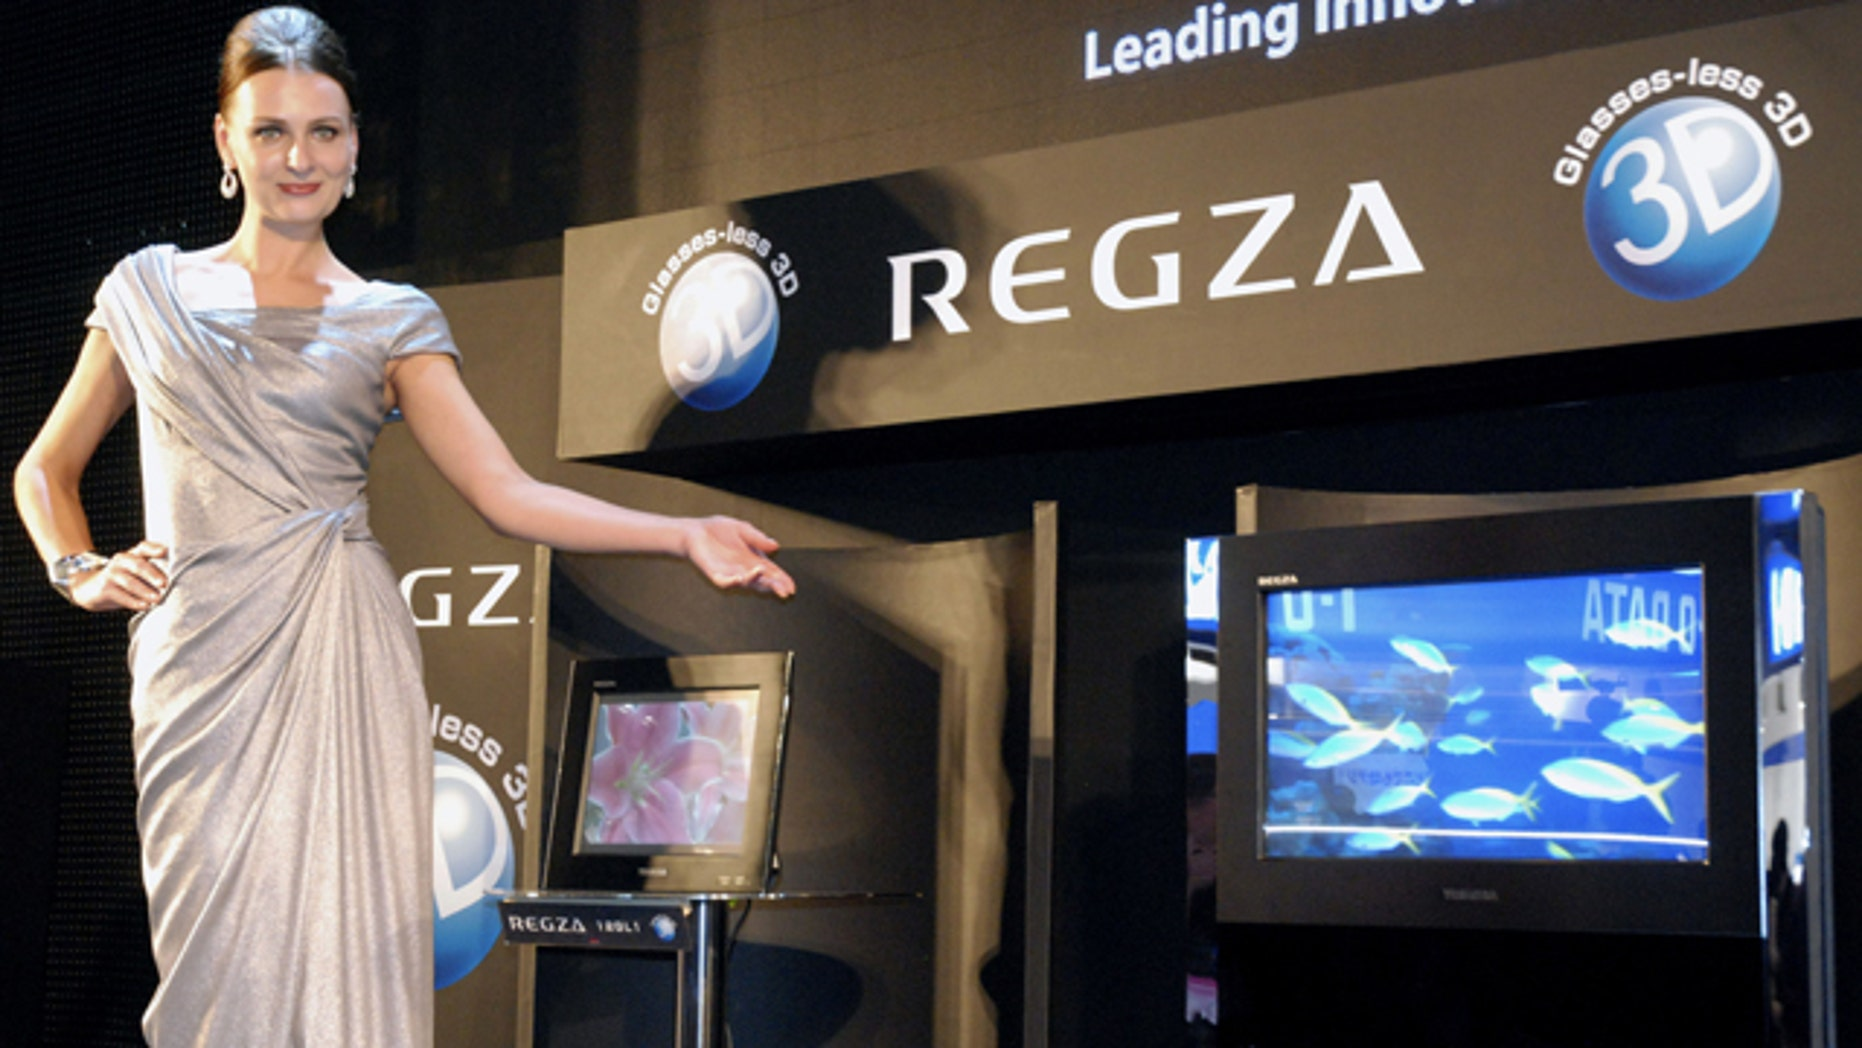 A model shows Toshiba Corp.'s world's first high definition liquid crystal display 3-D television in Chiba, east of Tokyo, Monday, Oct. 4, 2010. The new 3-D TV does not require special glasses, one of the biggest consumer complaints about the technology.